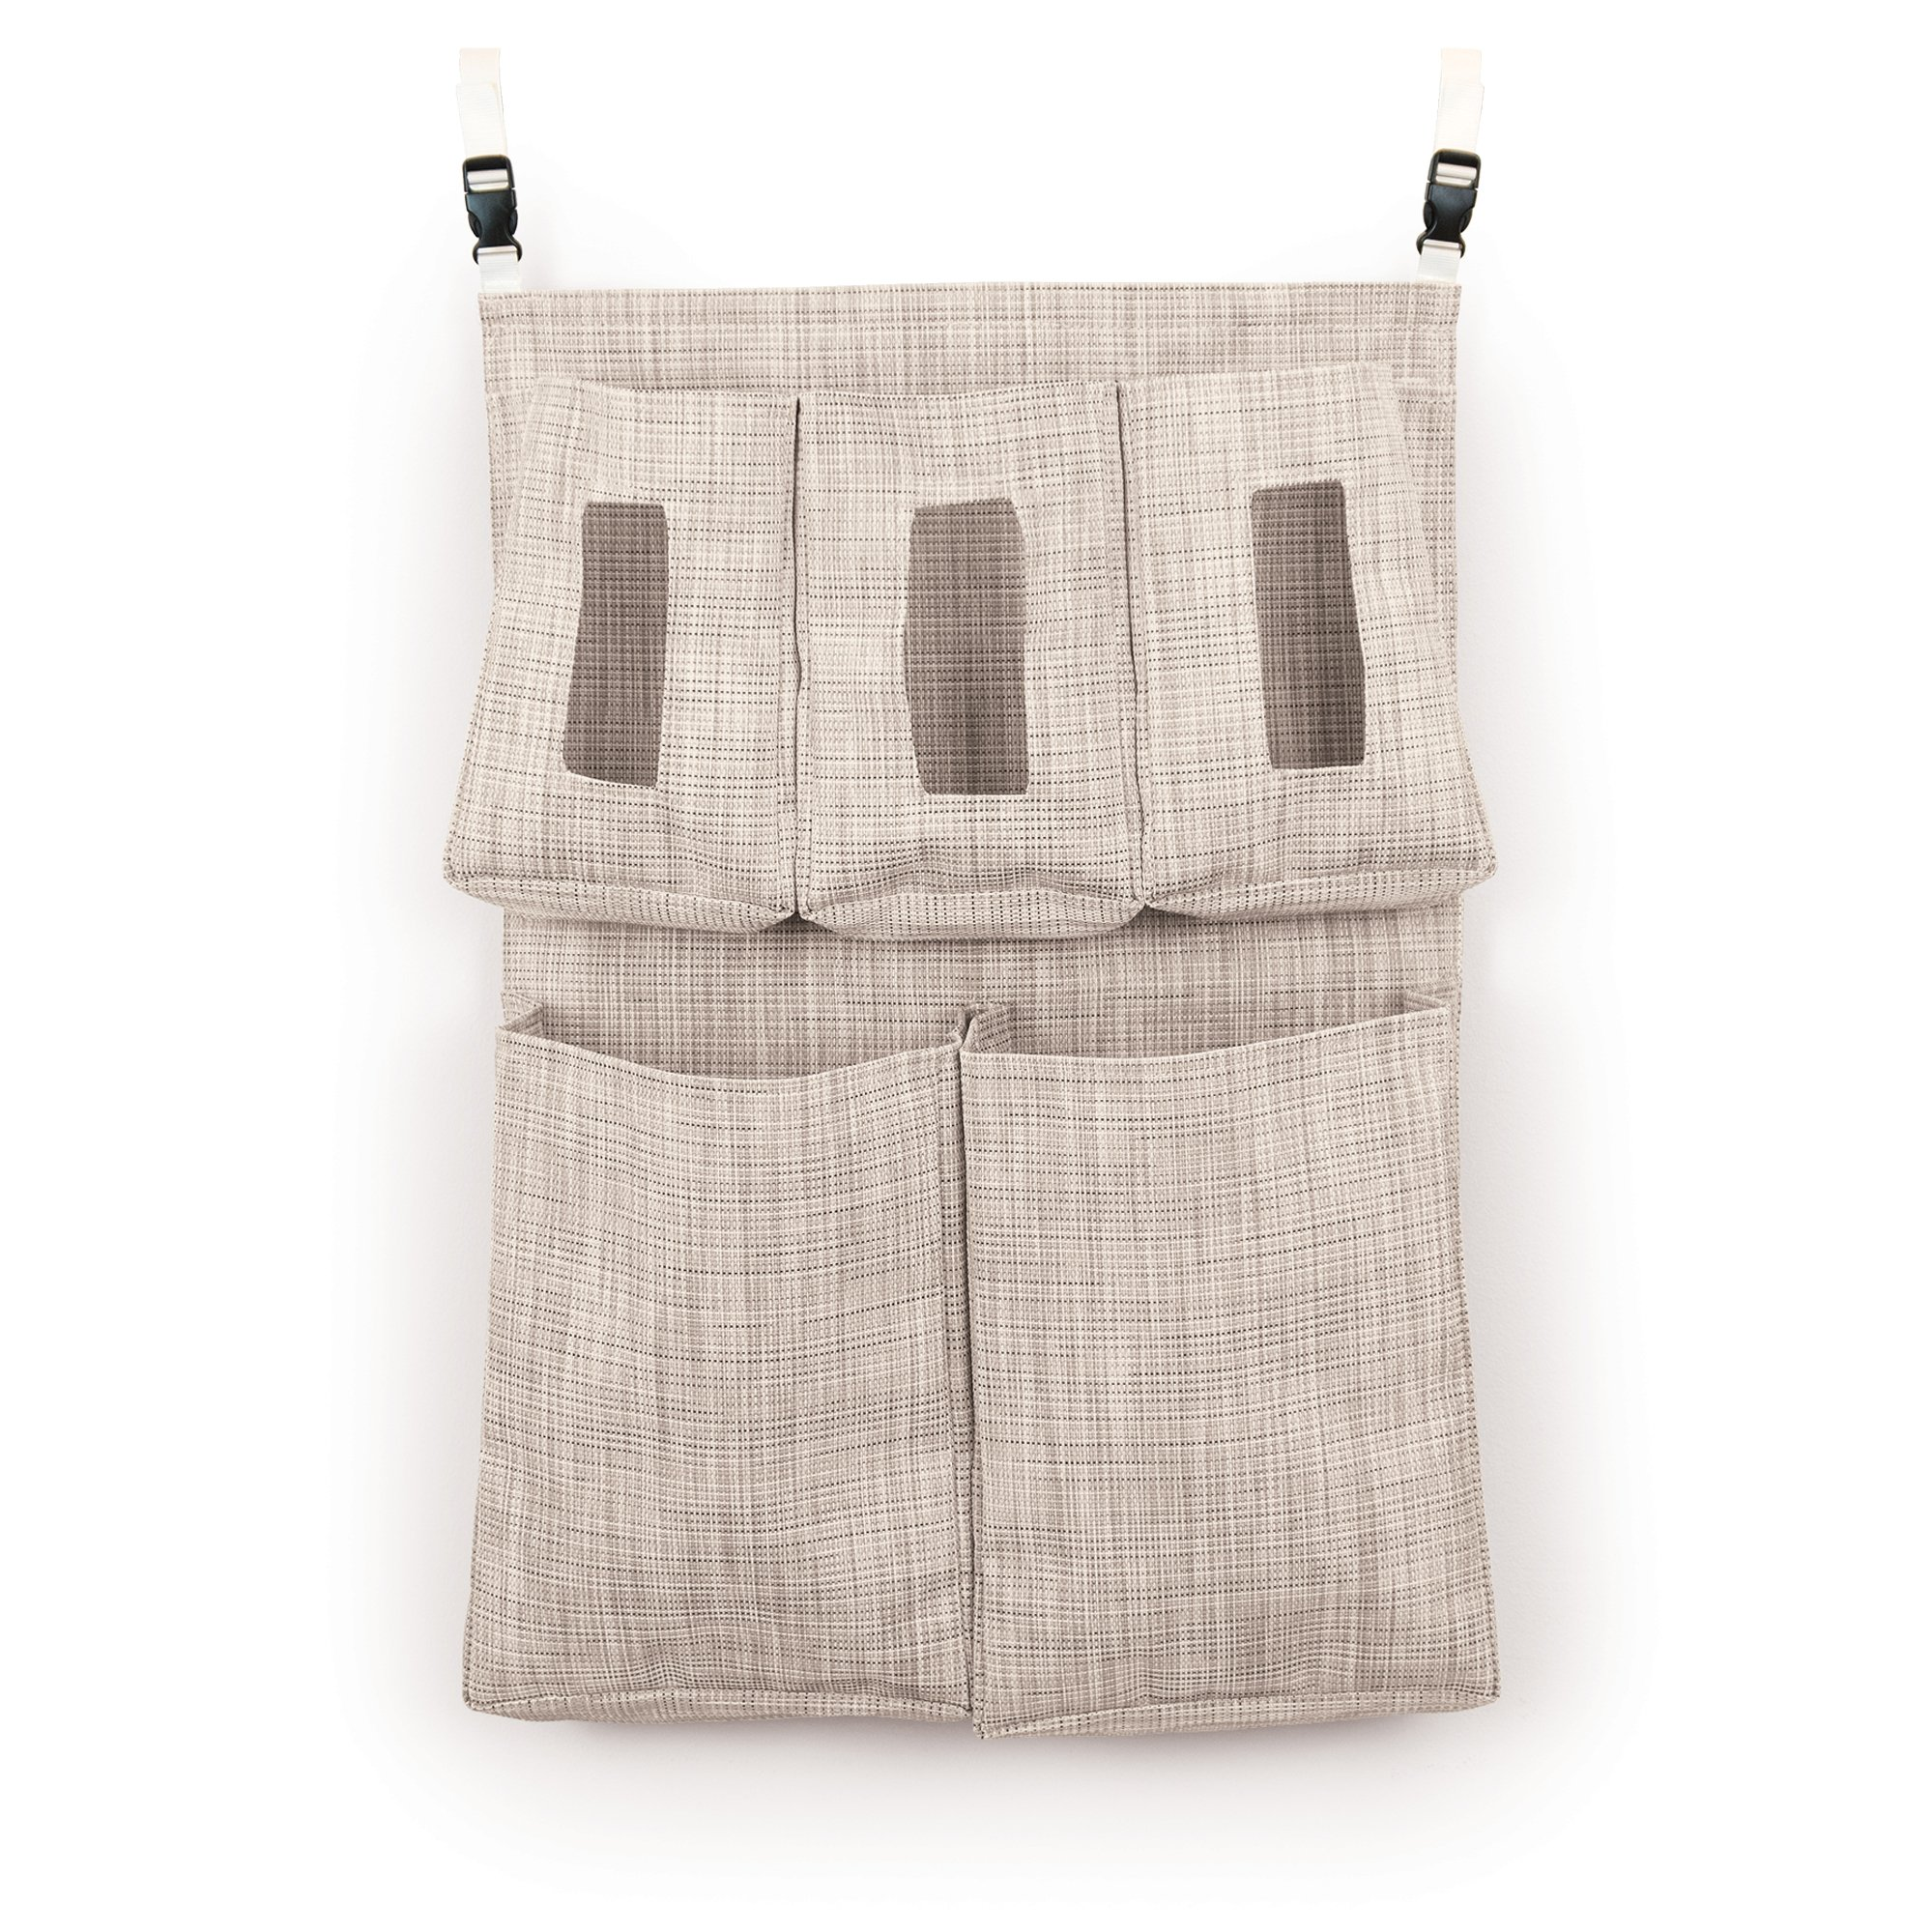 Mesh Cart Stock Station, Linen by Innovative Products Unlimited (Image #1)